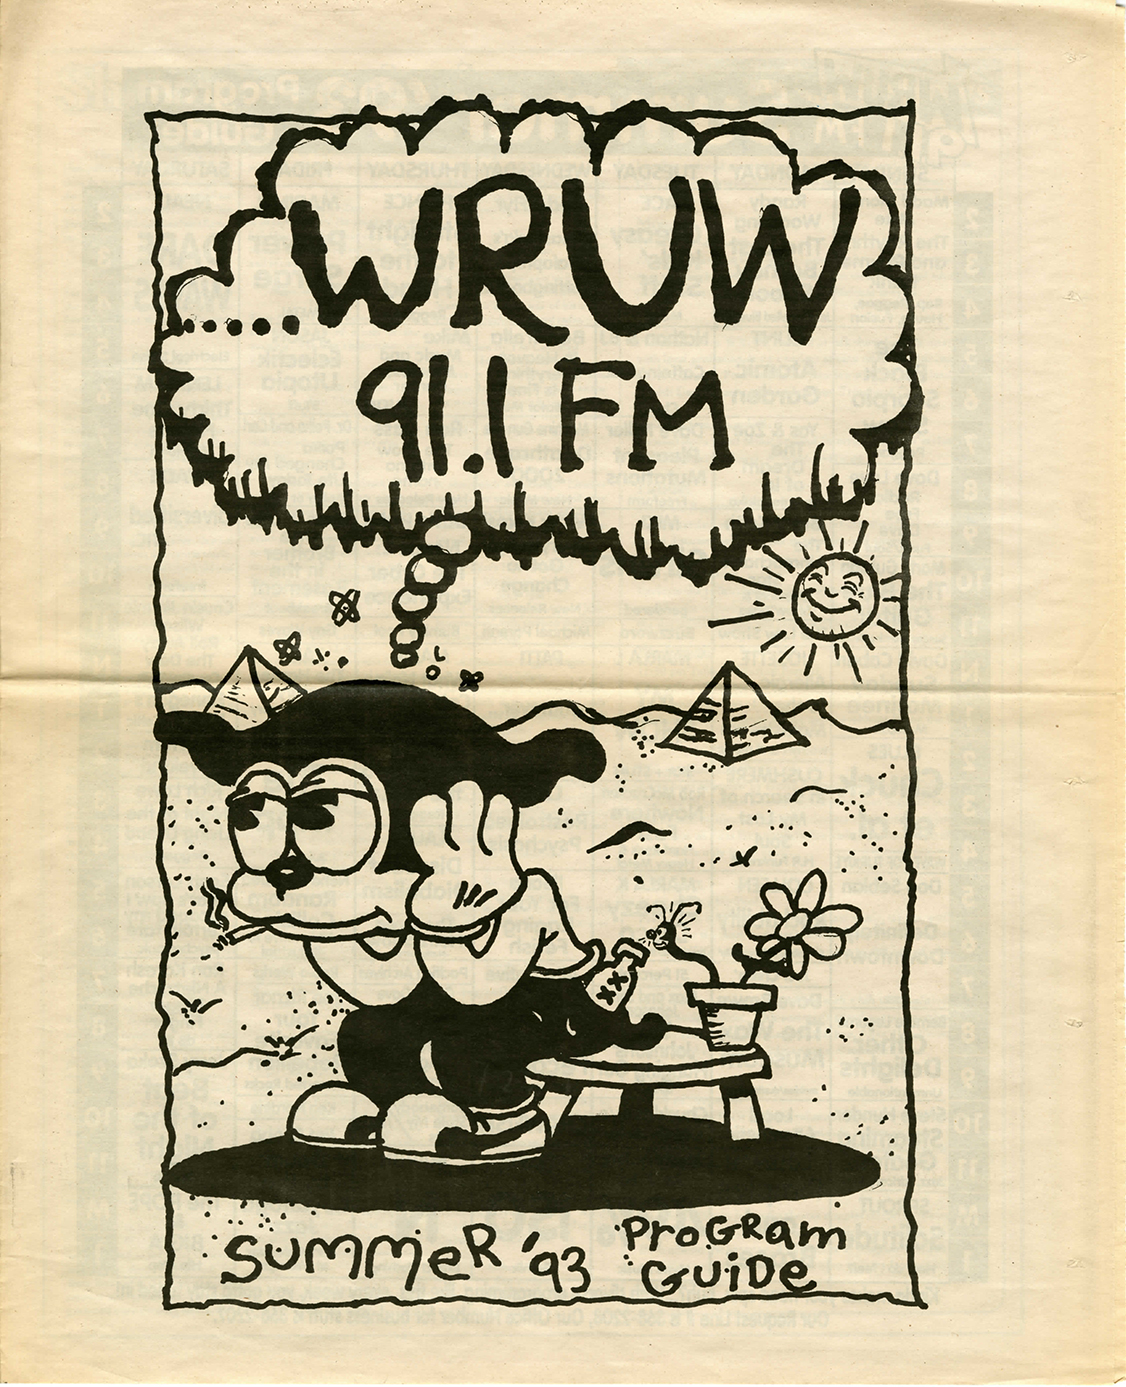 Newsprint cover of WRUW programming guide with image of cartoon dog in the desert from 1993.